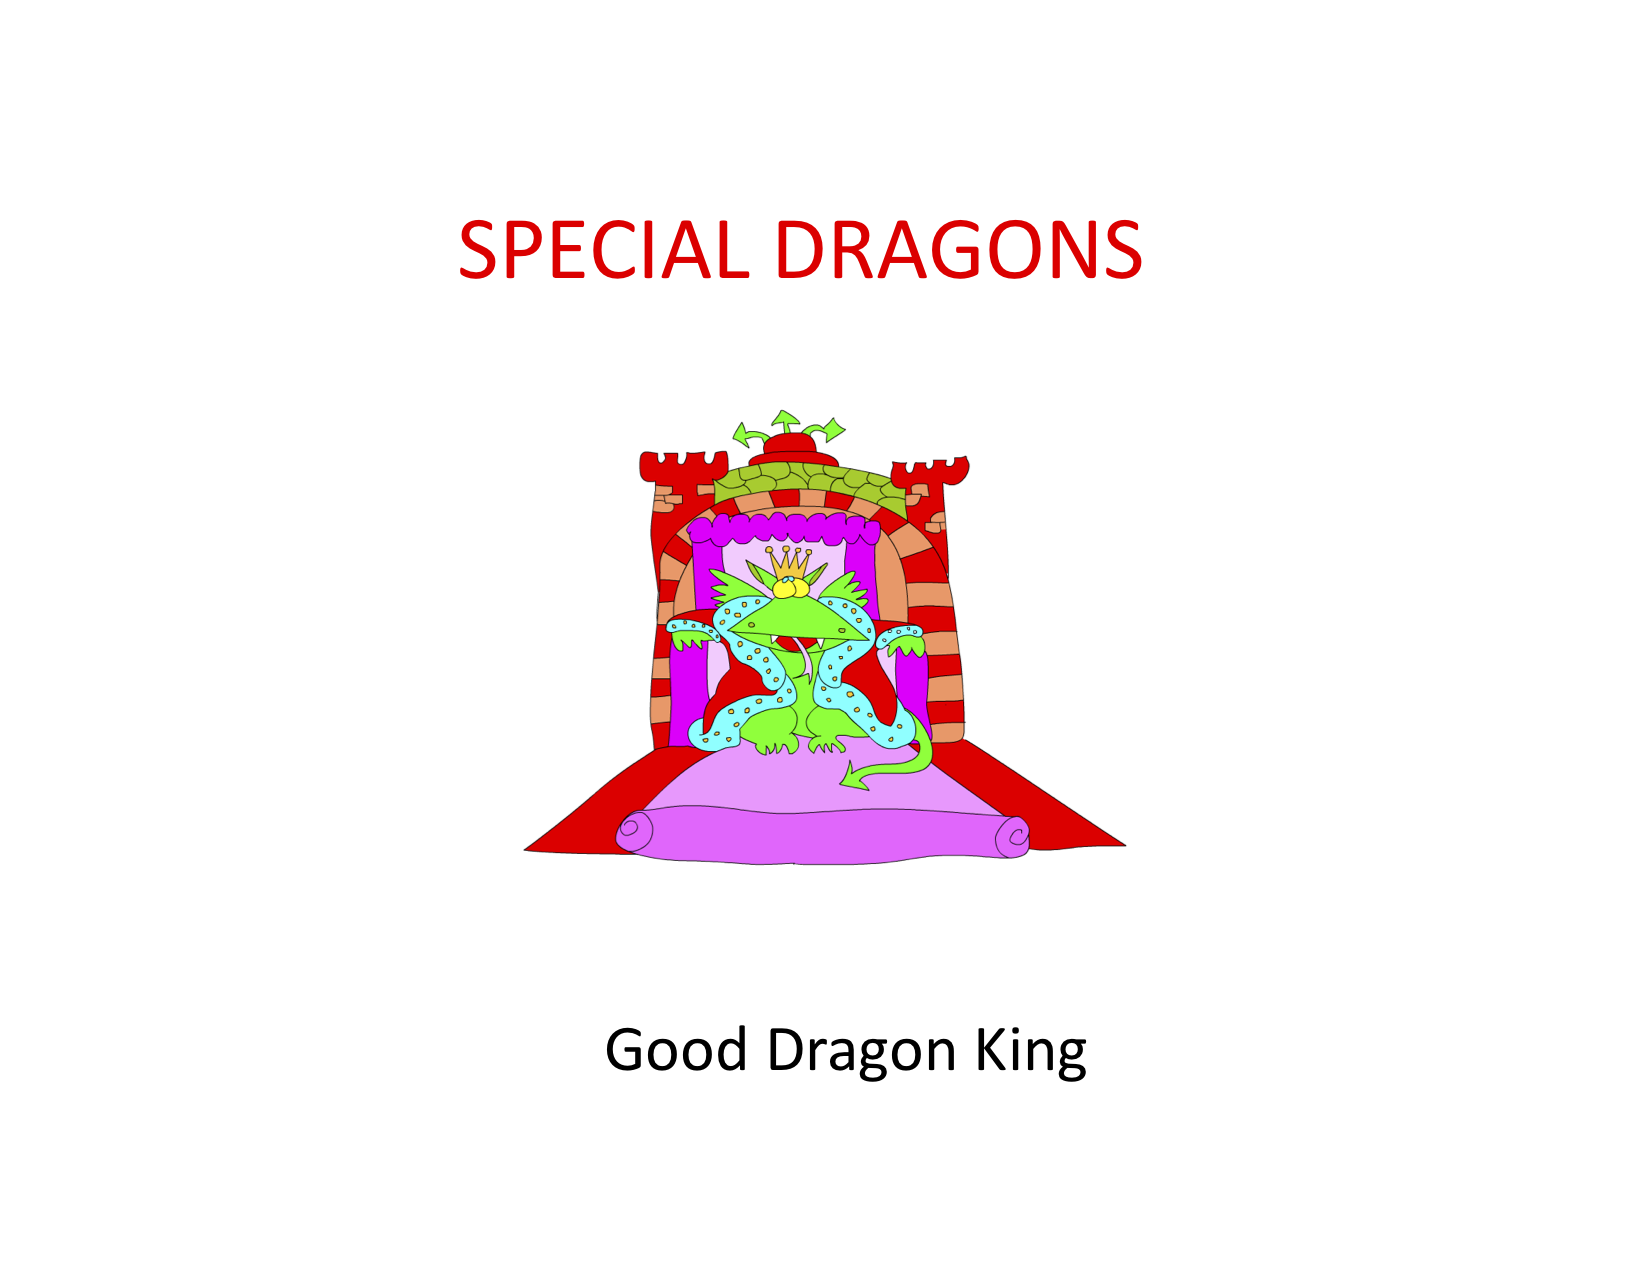 SpecialDragonsUSE (dragged)